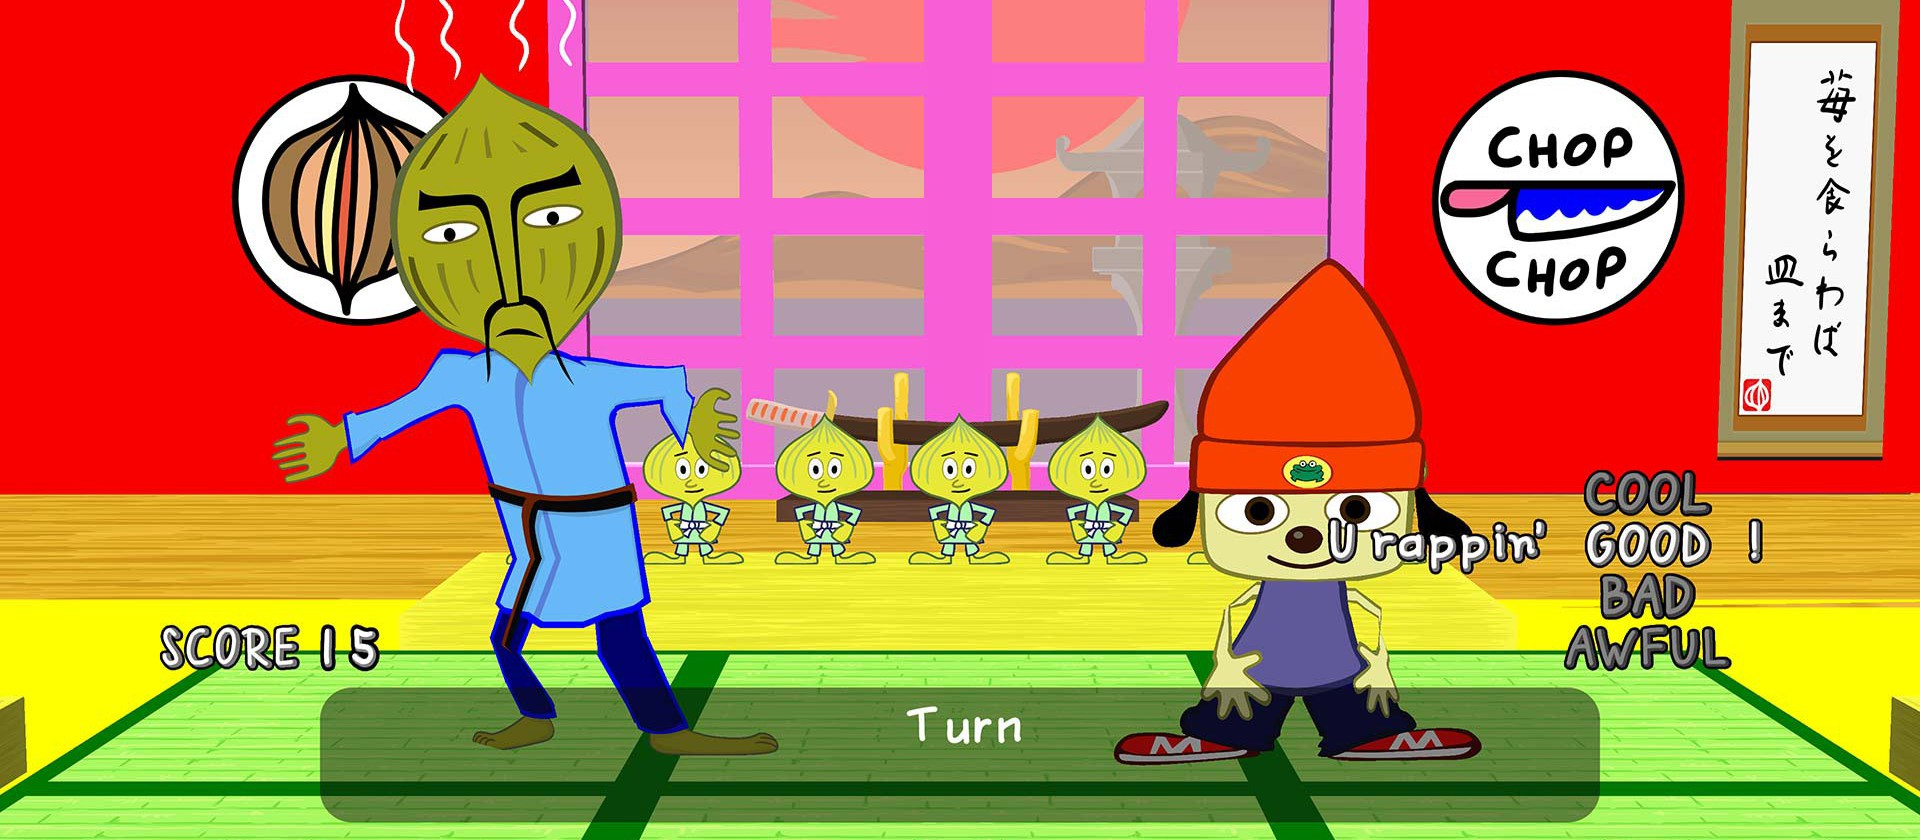 PaRappa : stage 1